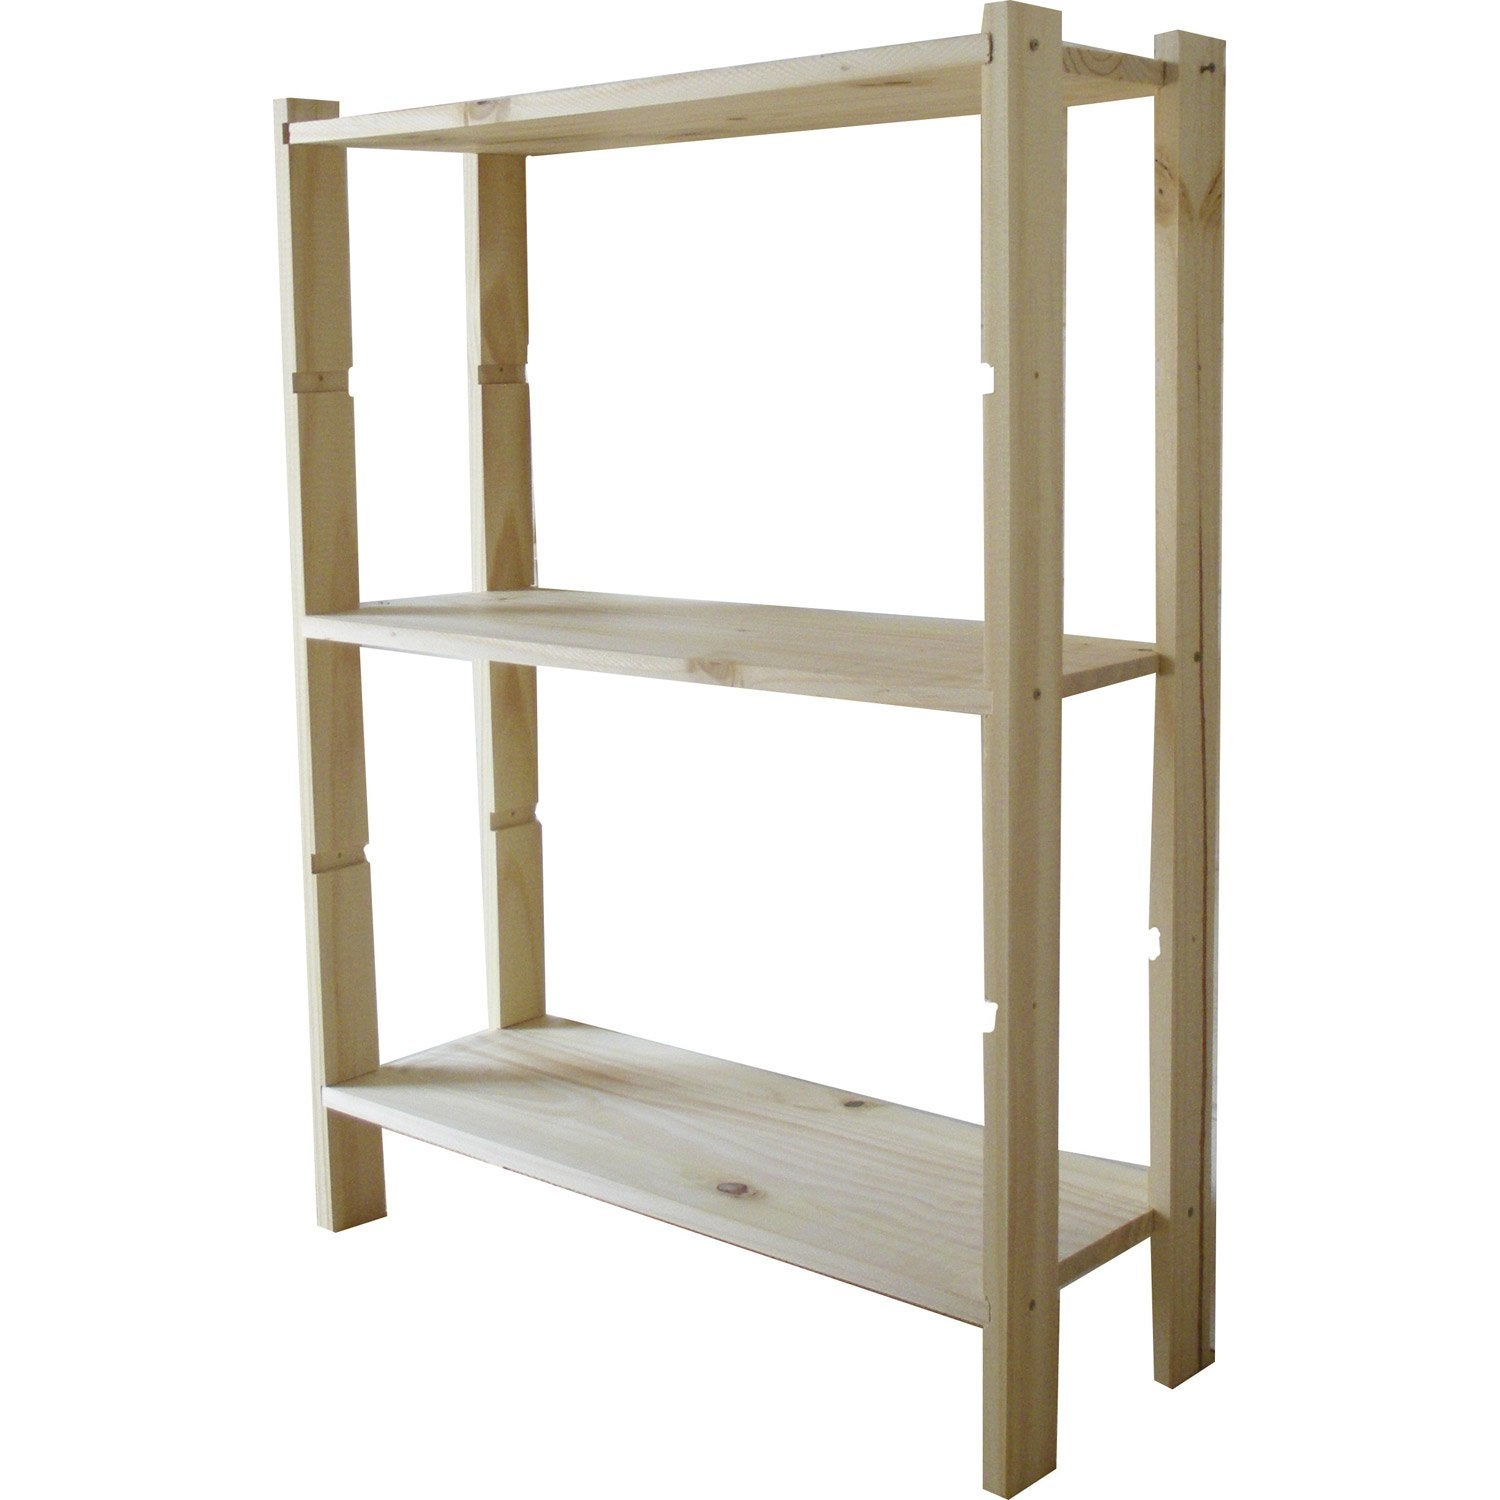 Etag re pin 3 tablettes x x cm leroy - Etagere a chaussure leroy merlin ...